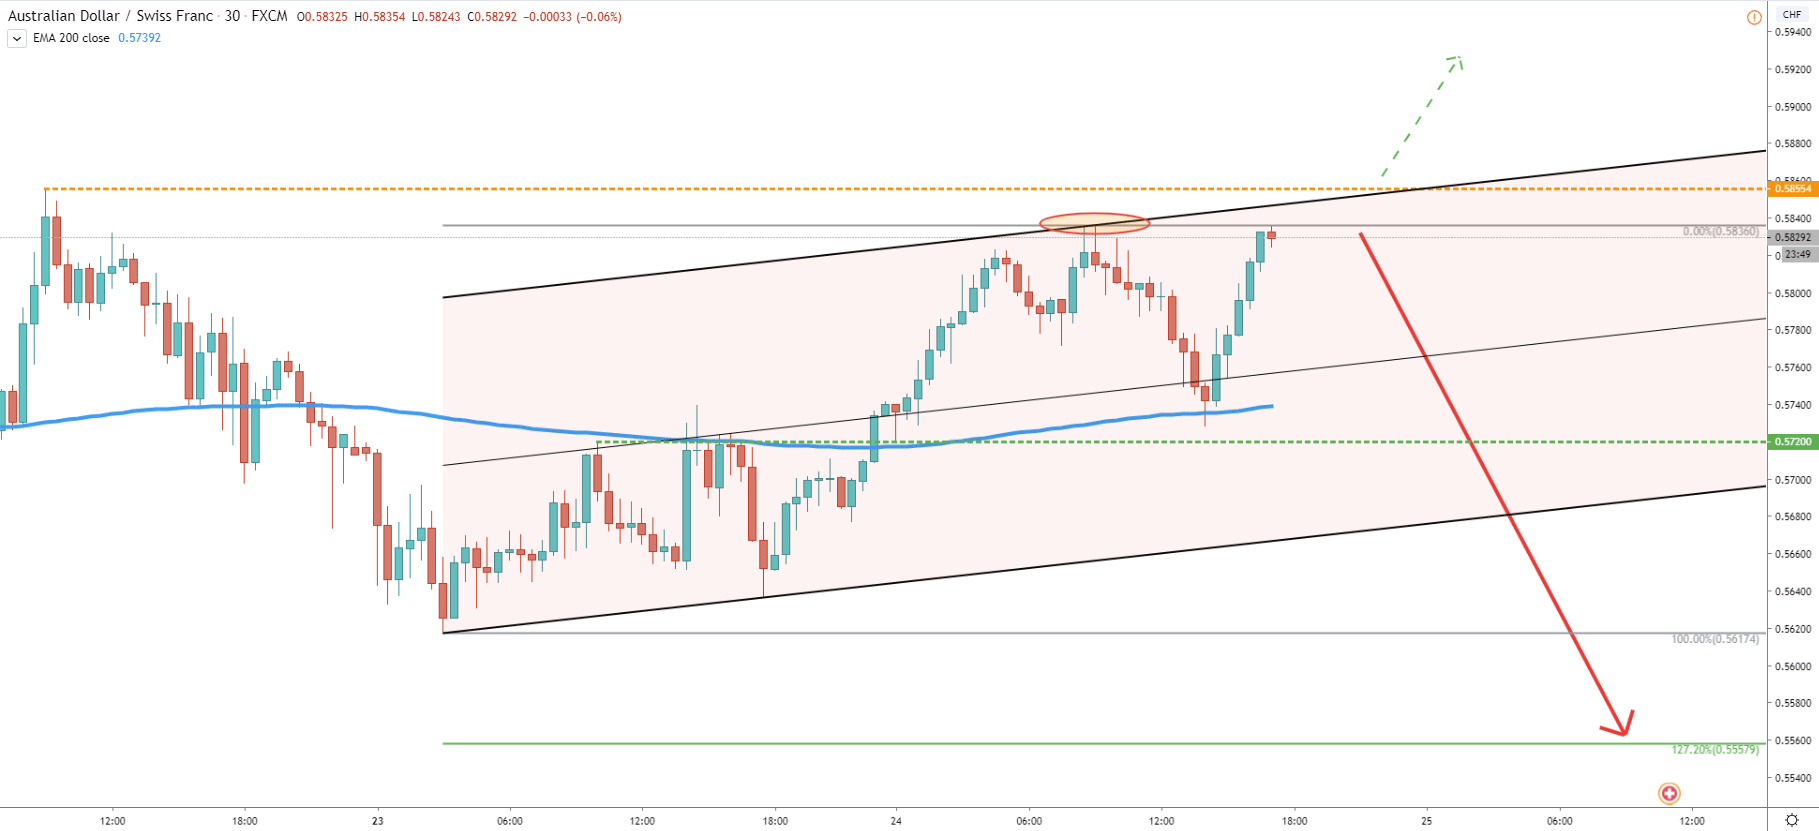 AUD/CHF 30-Minute  Technical Analysis 24 Mar 2020